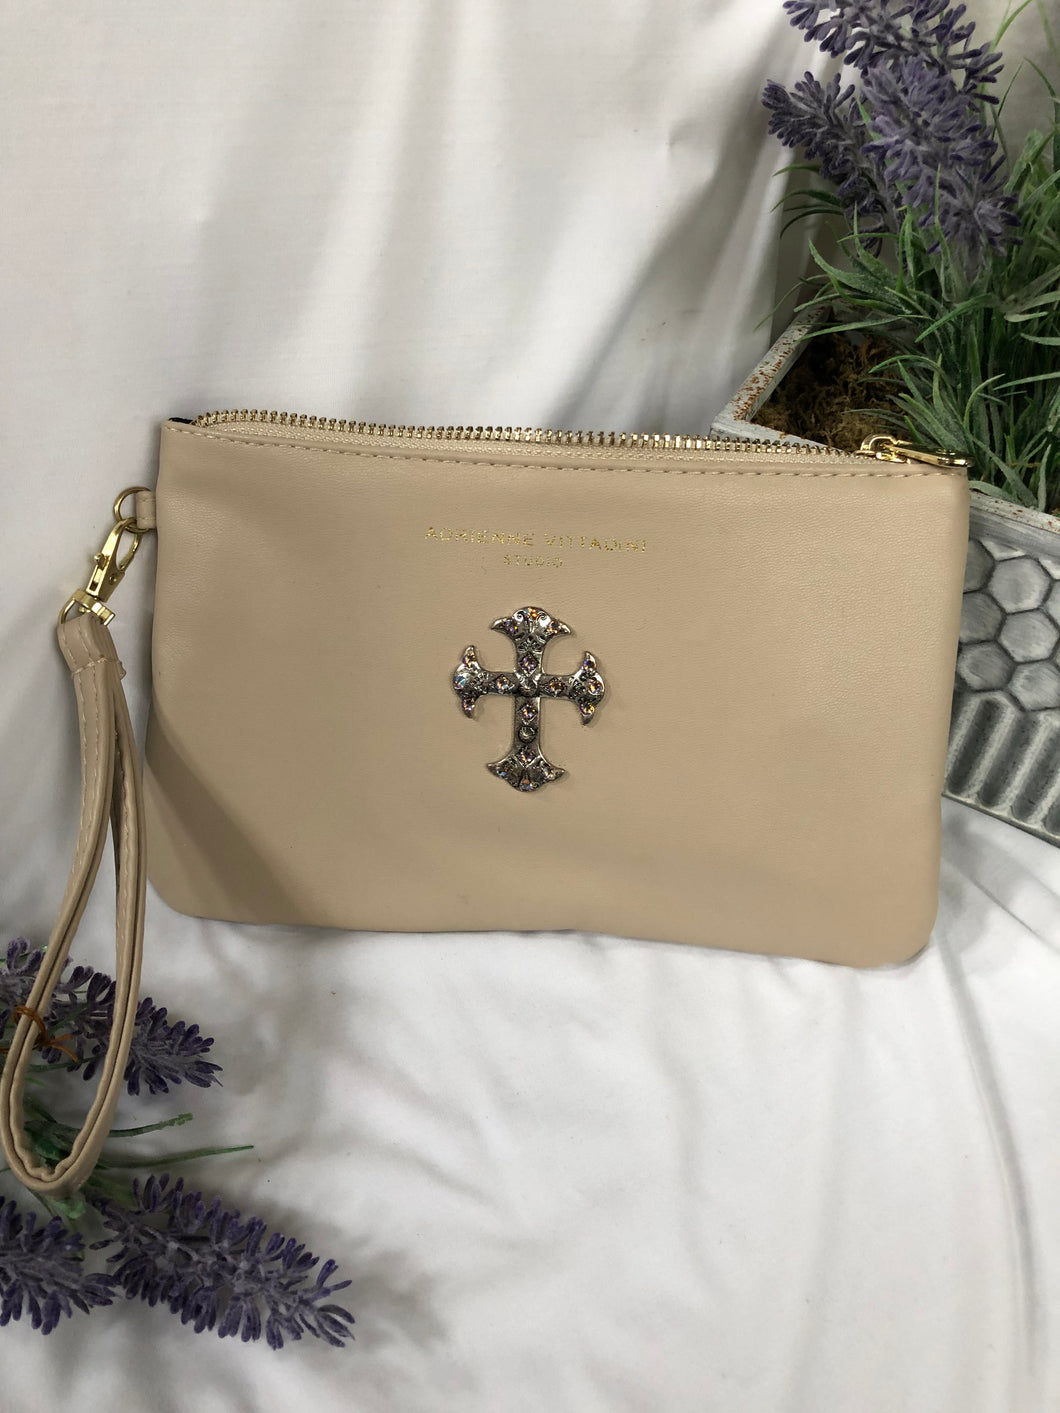 lt tan charger wallet with cross charm